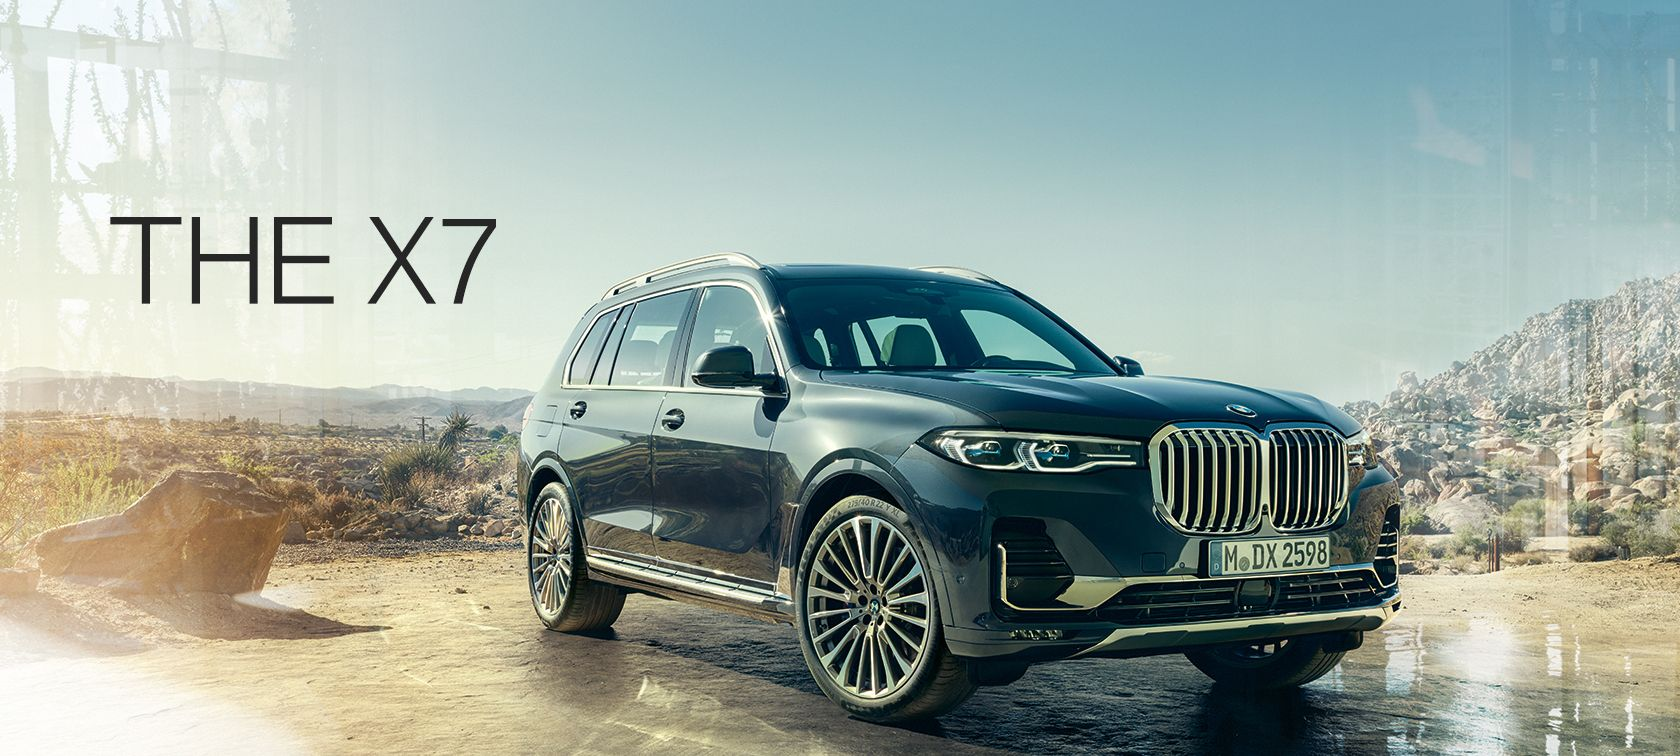 BMW Launches Their Top Of The Line X7 SUV Priced At Rs